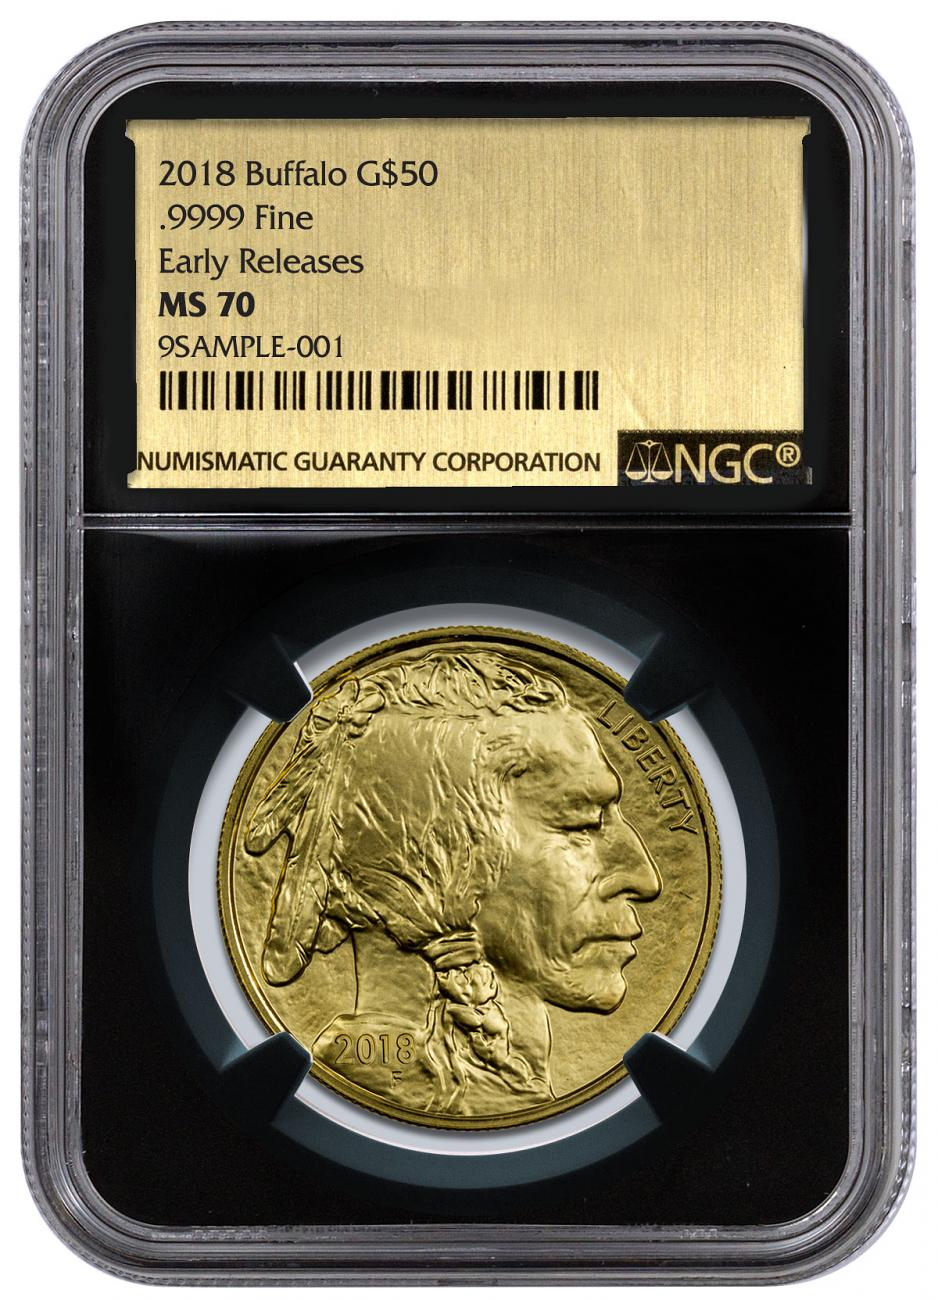 2018 1 oz Gold Buffalo $50 Coin NGC MS70 ER Black Core Holder Exclusive Gold Foil Label